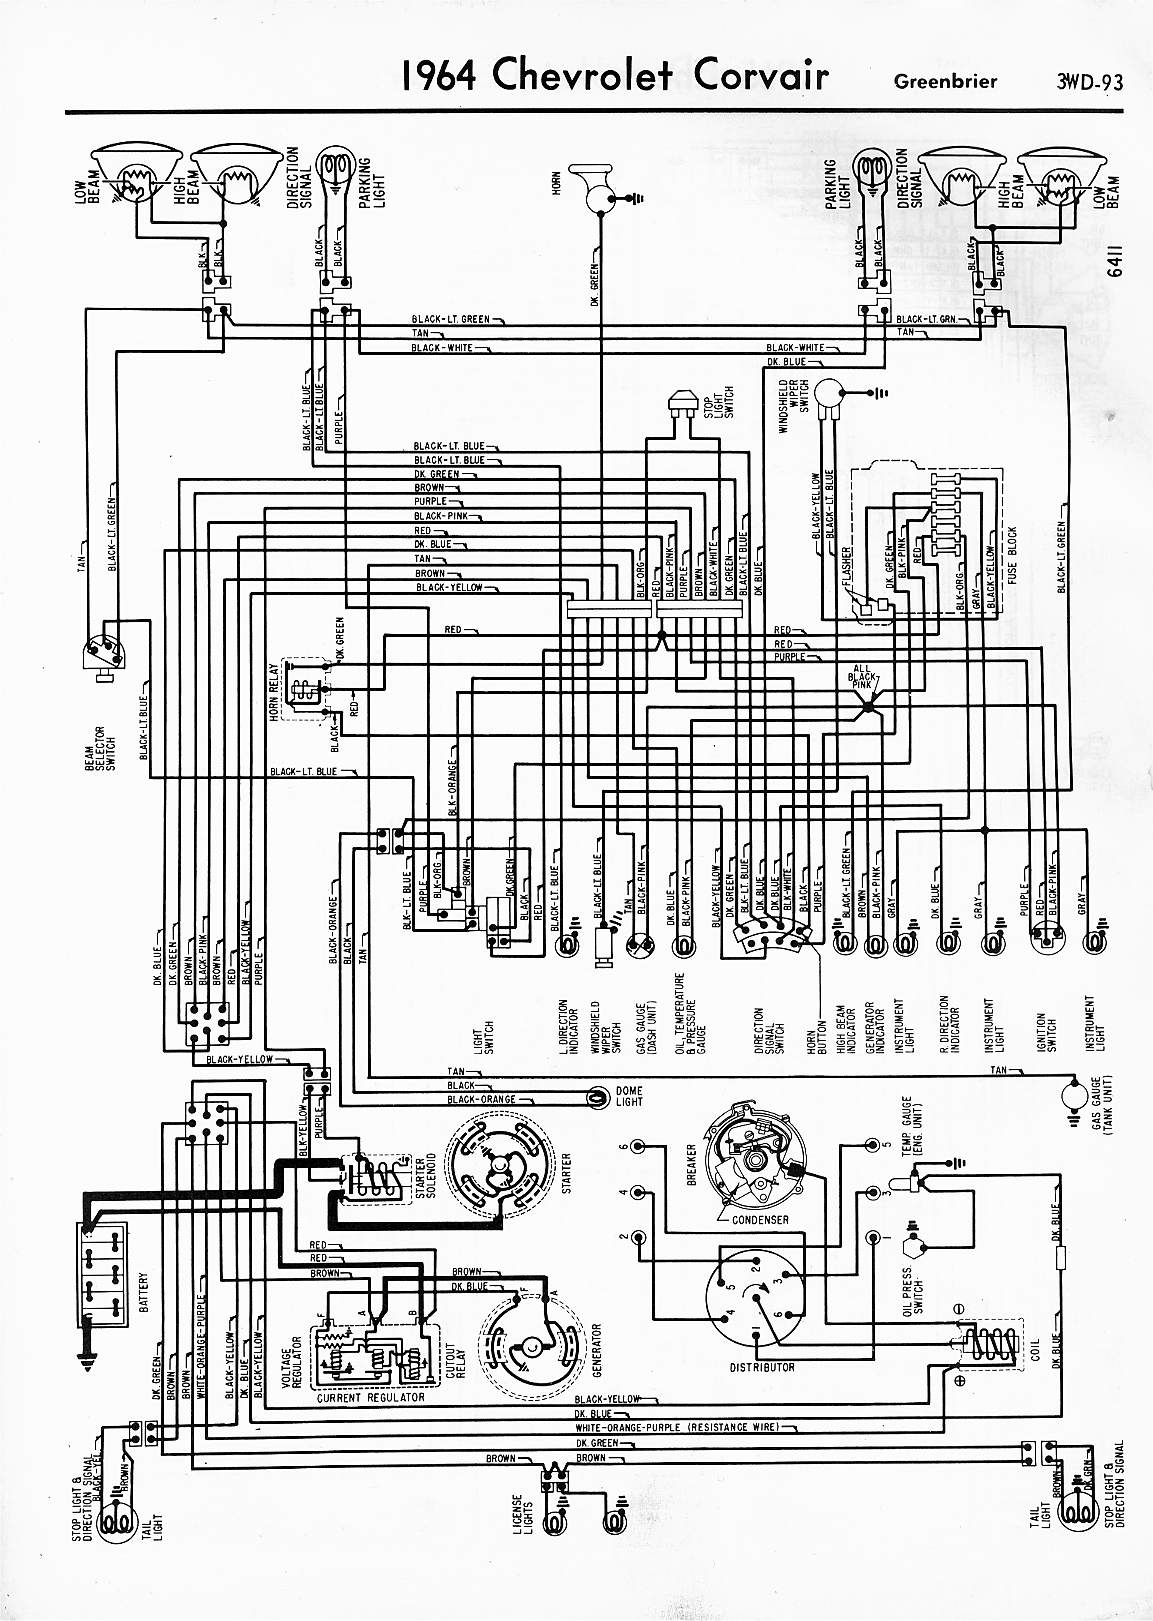 ih 1586 wiring diagram 22 wiring diagram images wiring